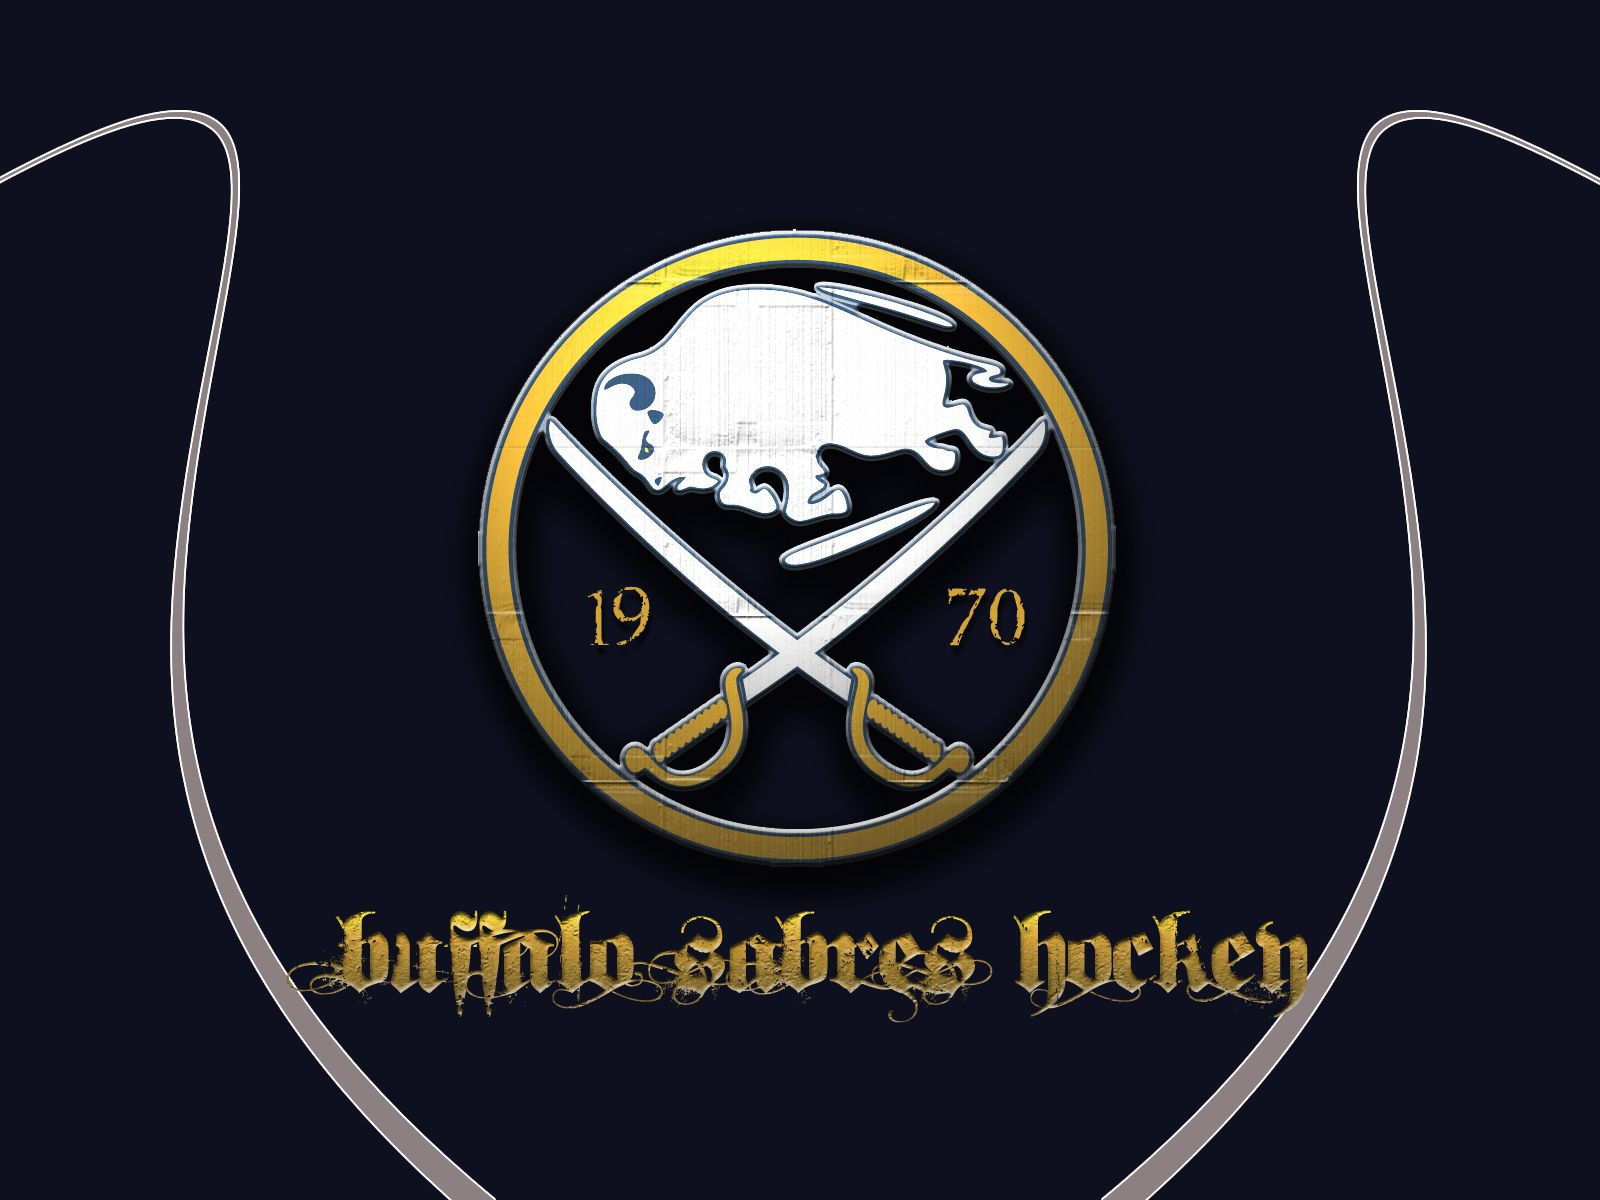 1600x1200 - Buffalo Sabres Wallpapers 26